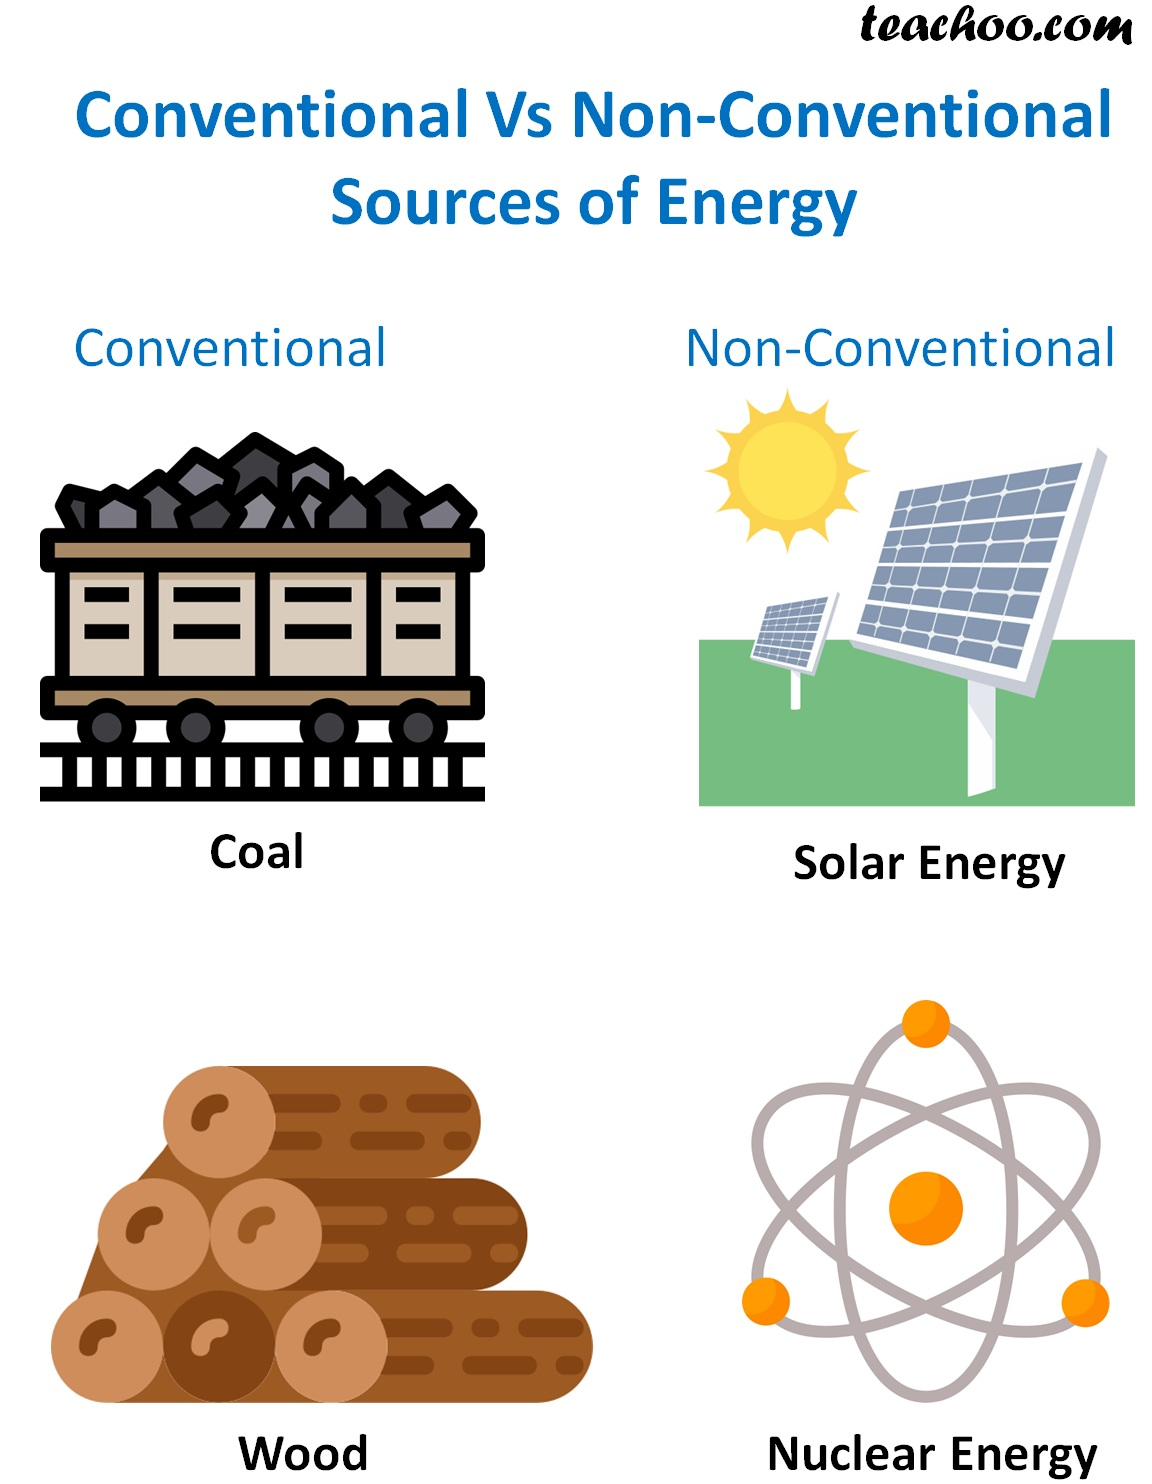 Conventional Vs Non-Conventional Sources of Energy - teachoo.jpg